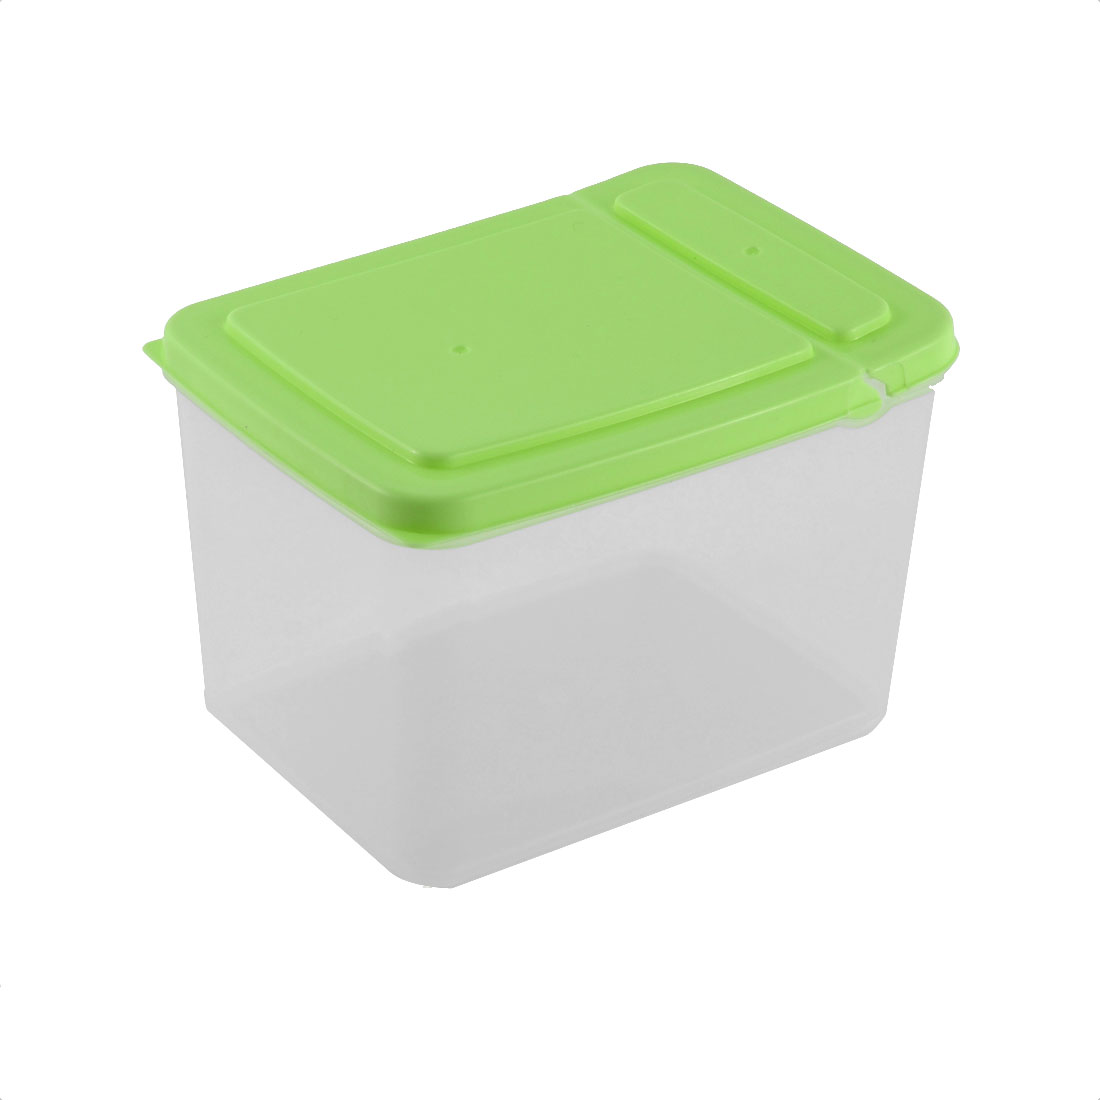 Household Pantry Refrigerator Freezer Plastic Transparent Storage Box Keeper Green